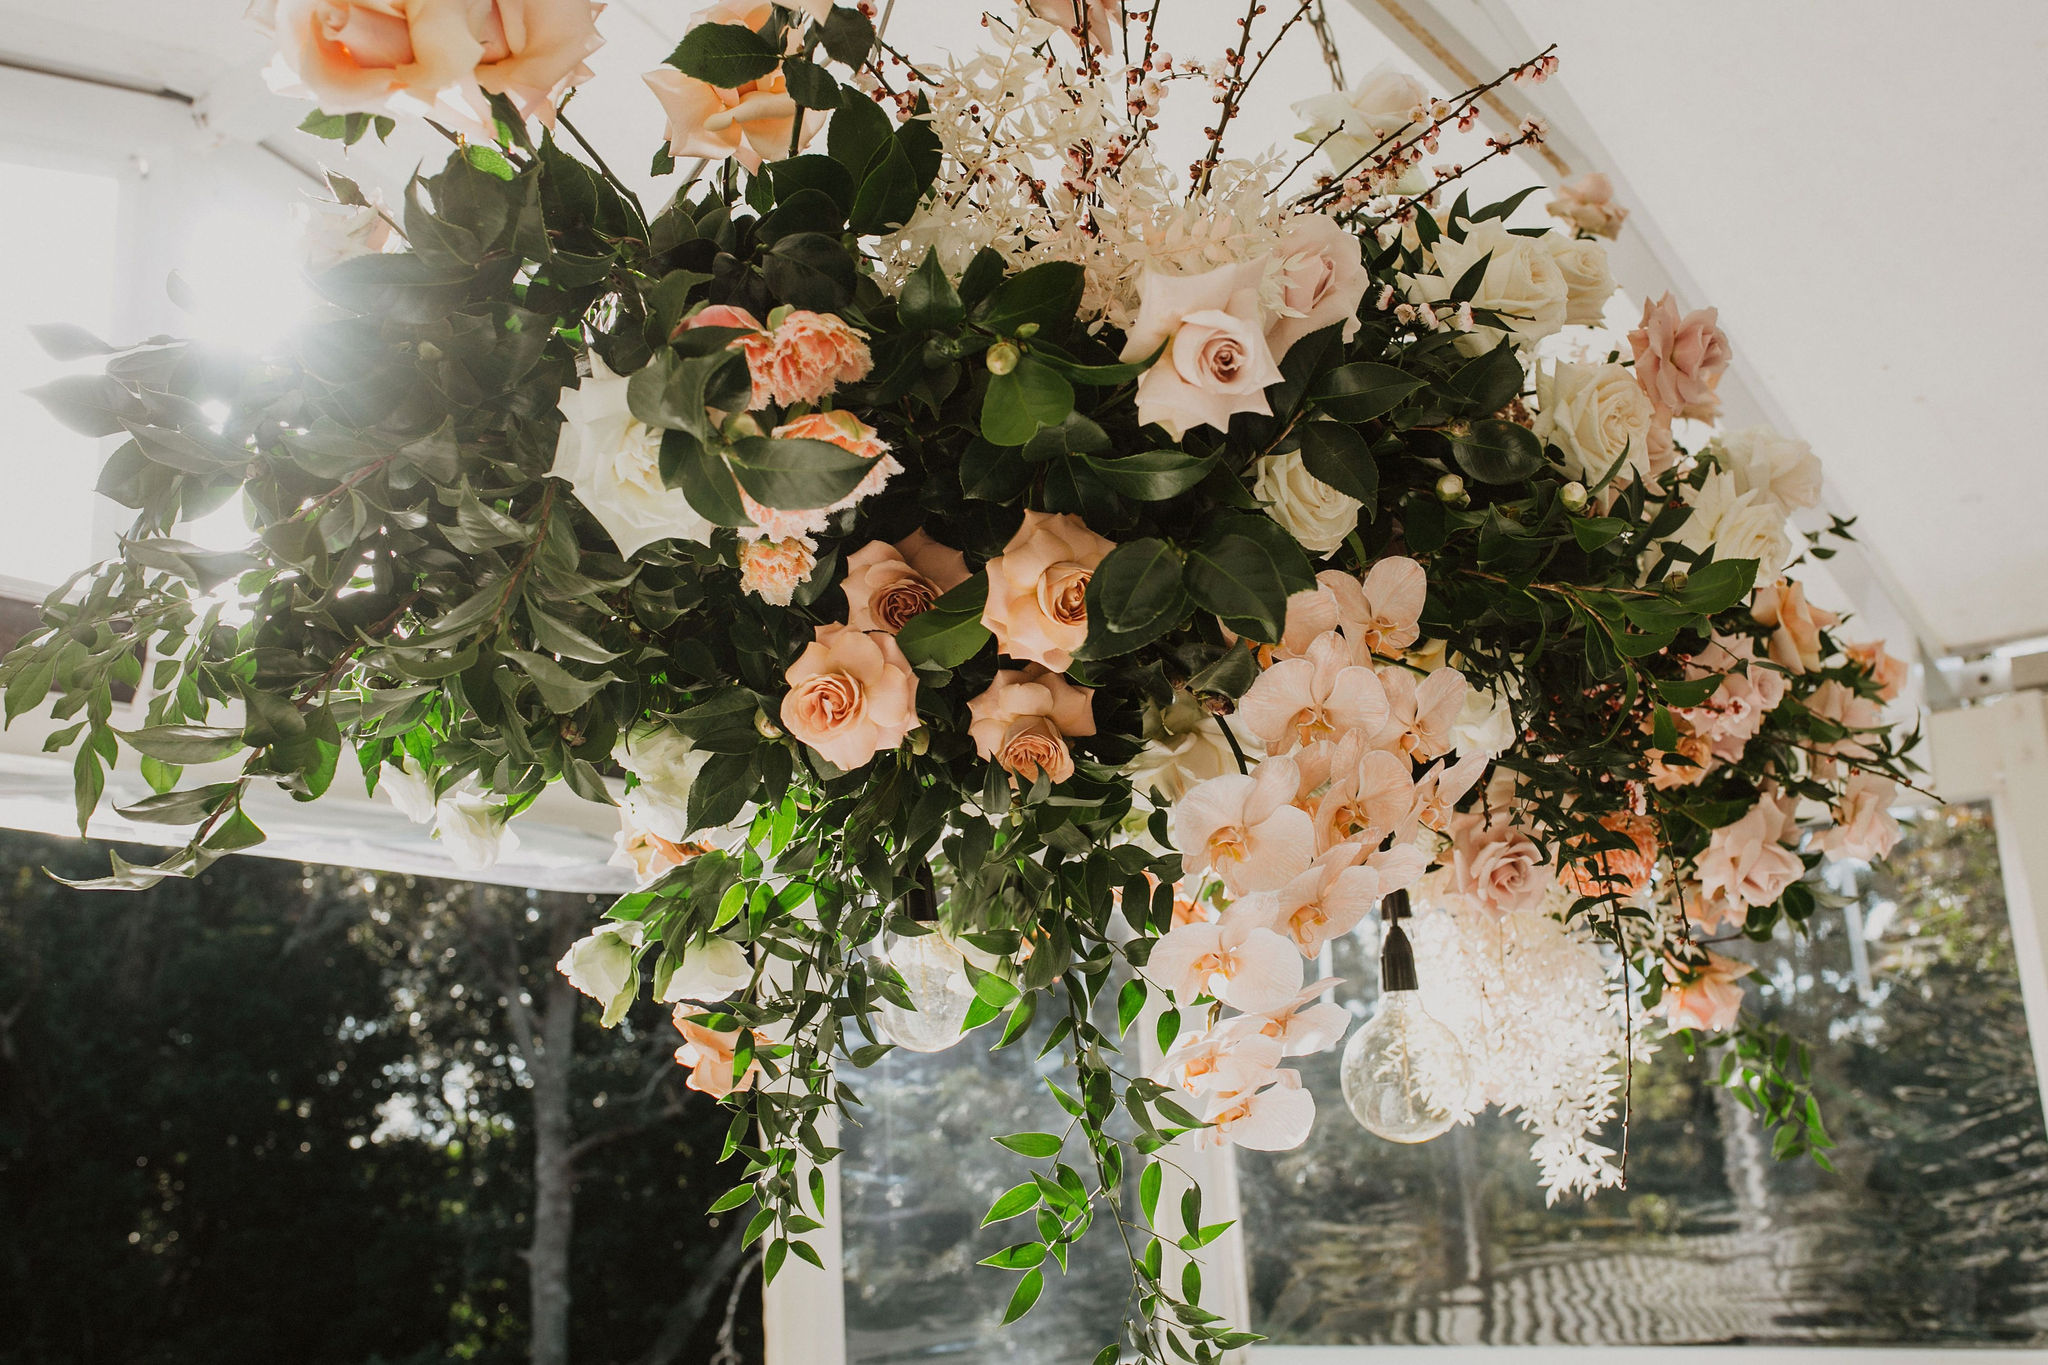 Antique pinks, whites and romantic blush blooms